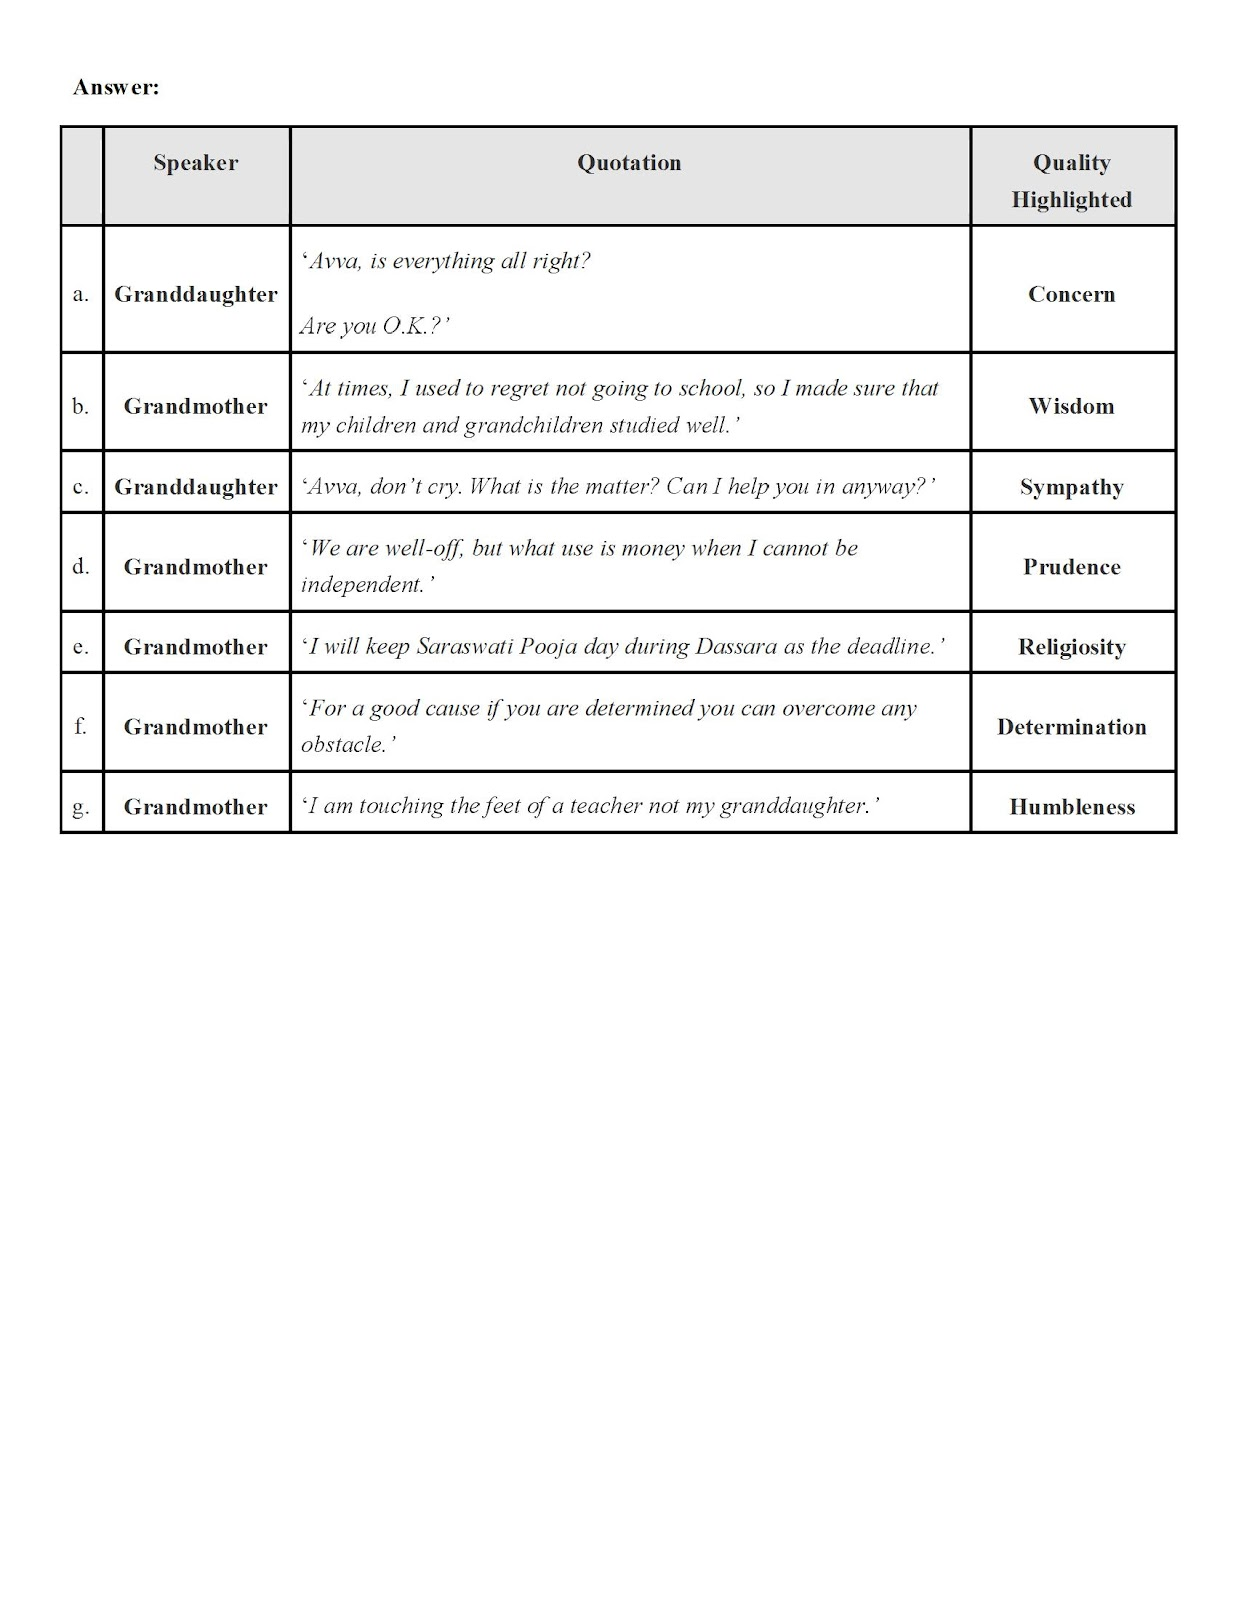 acc104 chapt 17 solutions Forests our lifeline class 7 science chapter 17 ncert solutions learn how forest prevent floods, decomposers, animals dwelling in the forests by ncert at byju'scom.